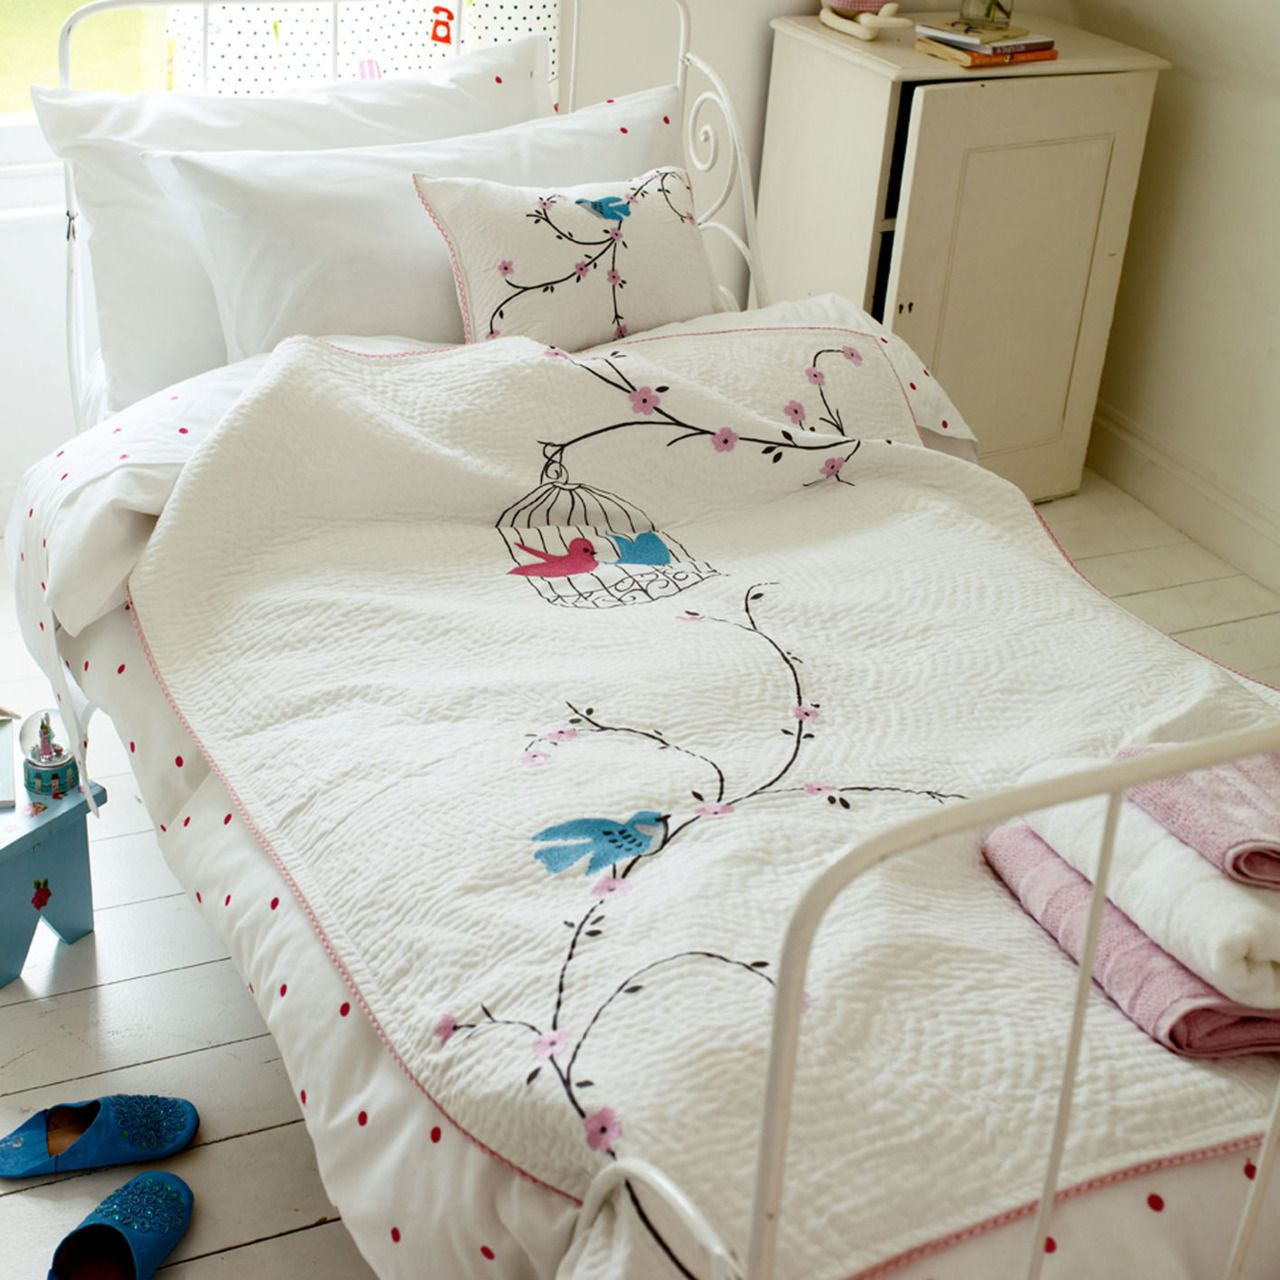 Baby quilts bed covers - Birds And Birdcage Quilt